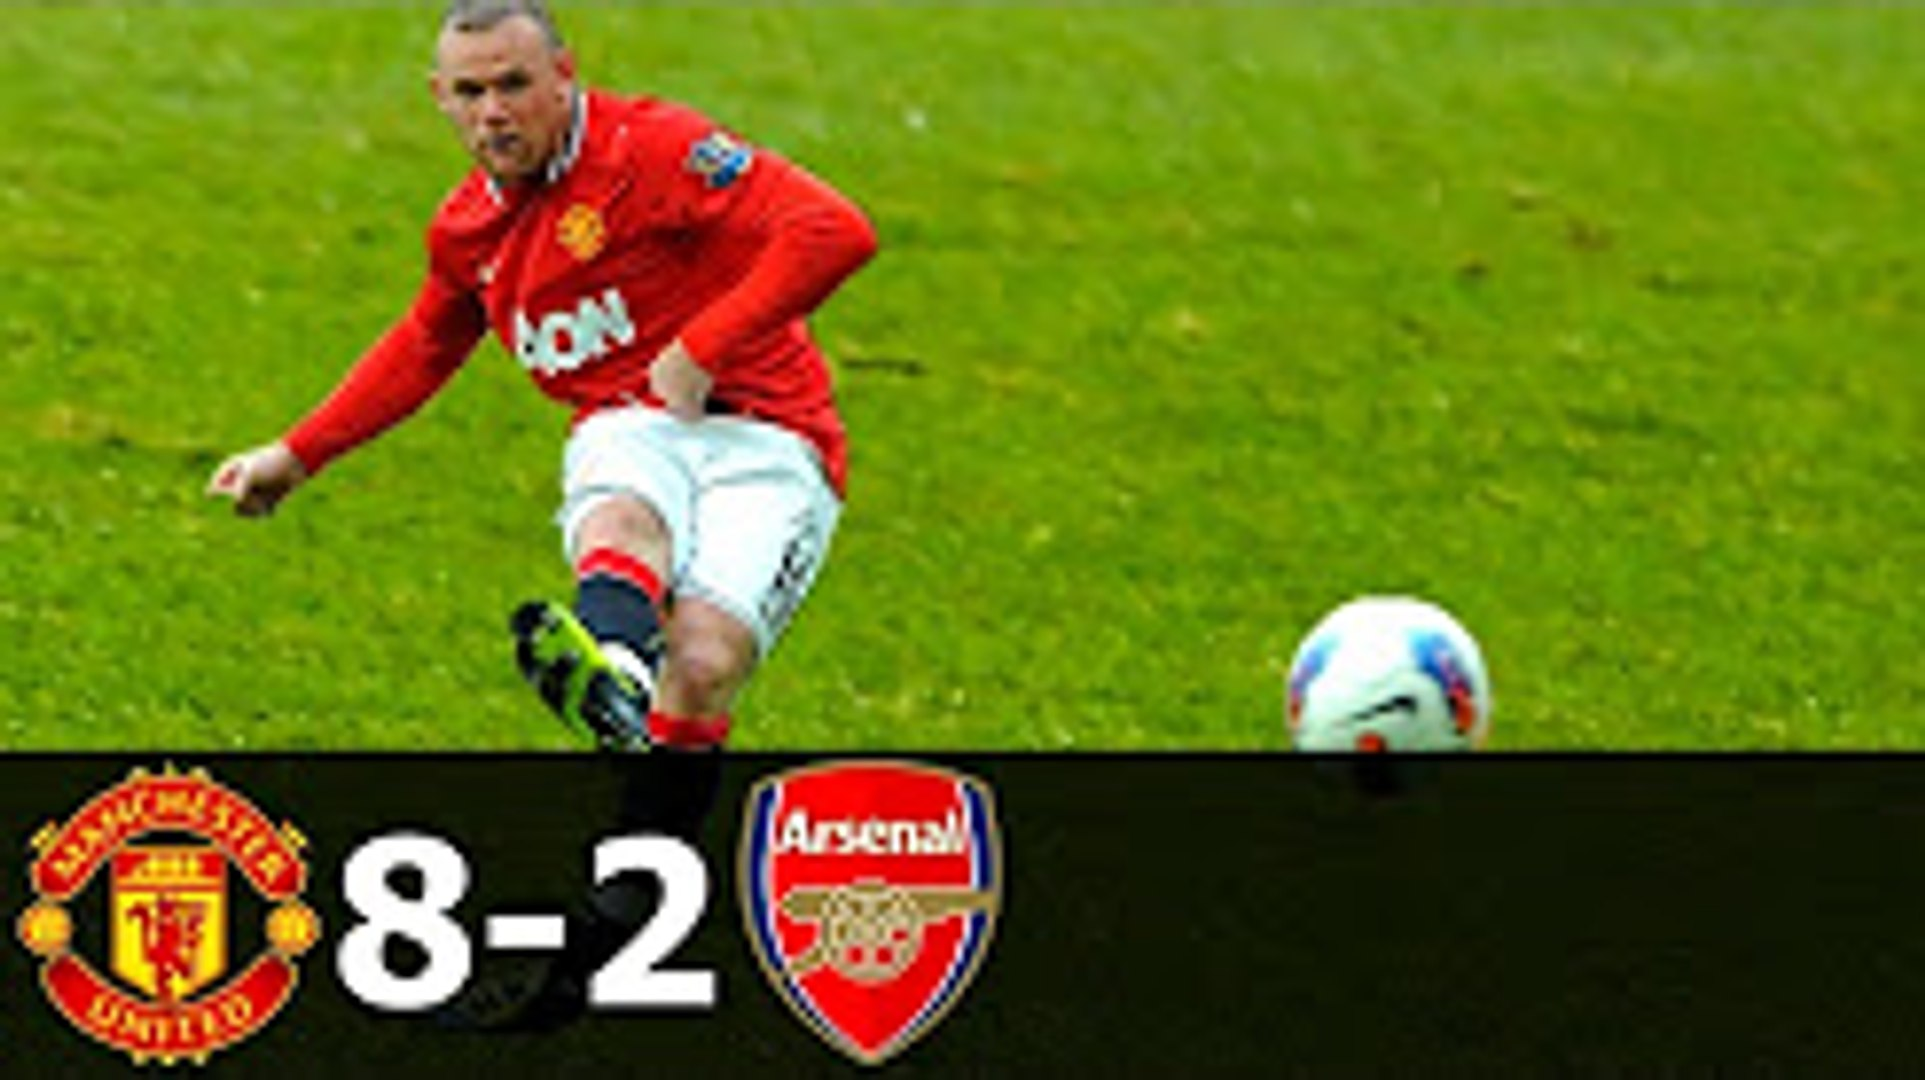 Manchester United Vs Arsenal 8 2 All Goals With English Commentary Video Dailymotion